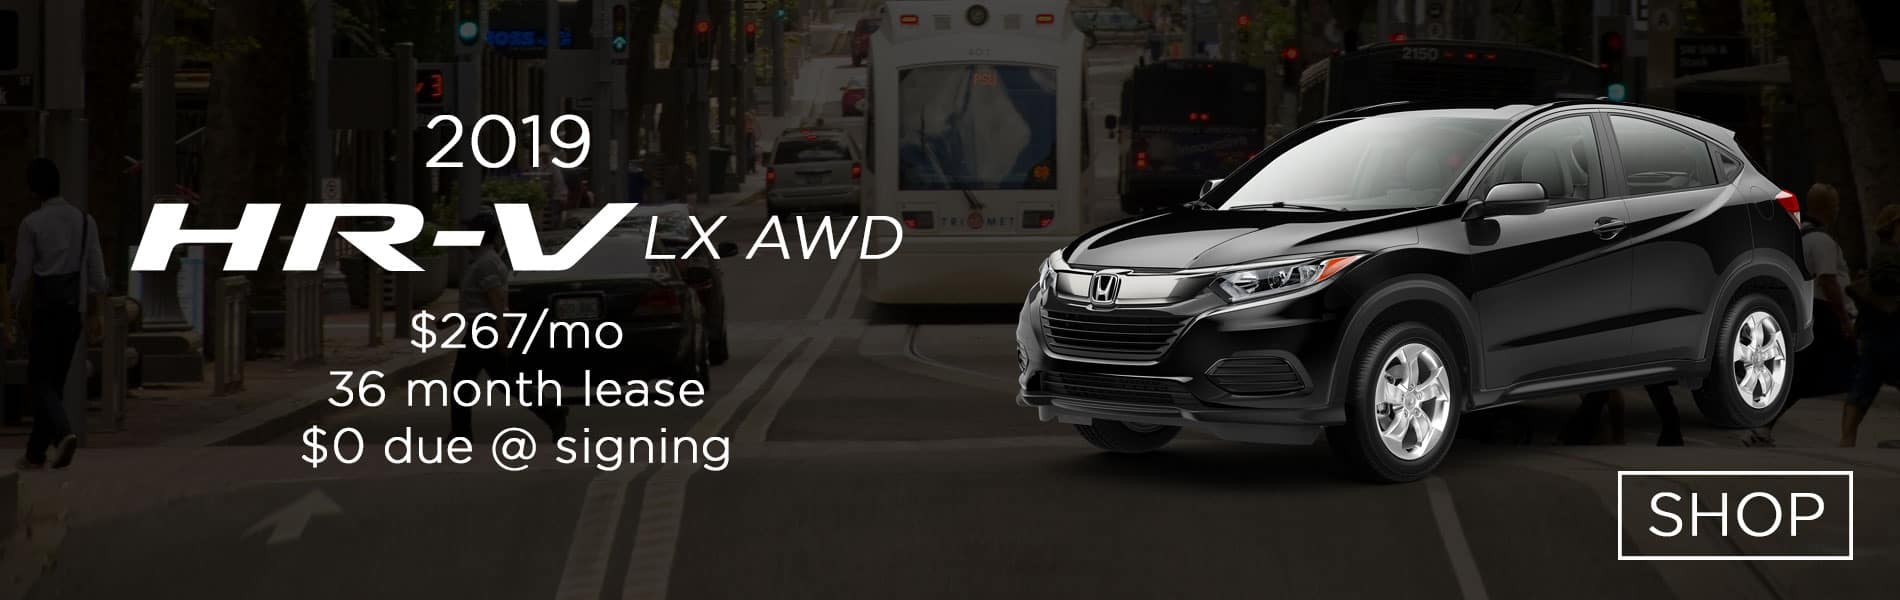 Lease a 2019 Honda HR-V LX AWD for $267 per month lease with $0 due at signing